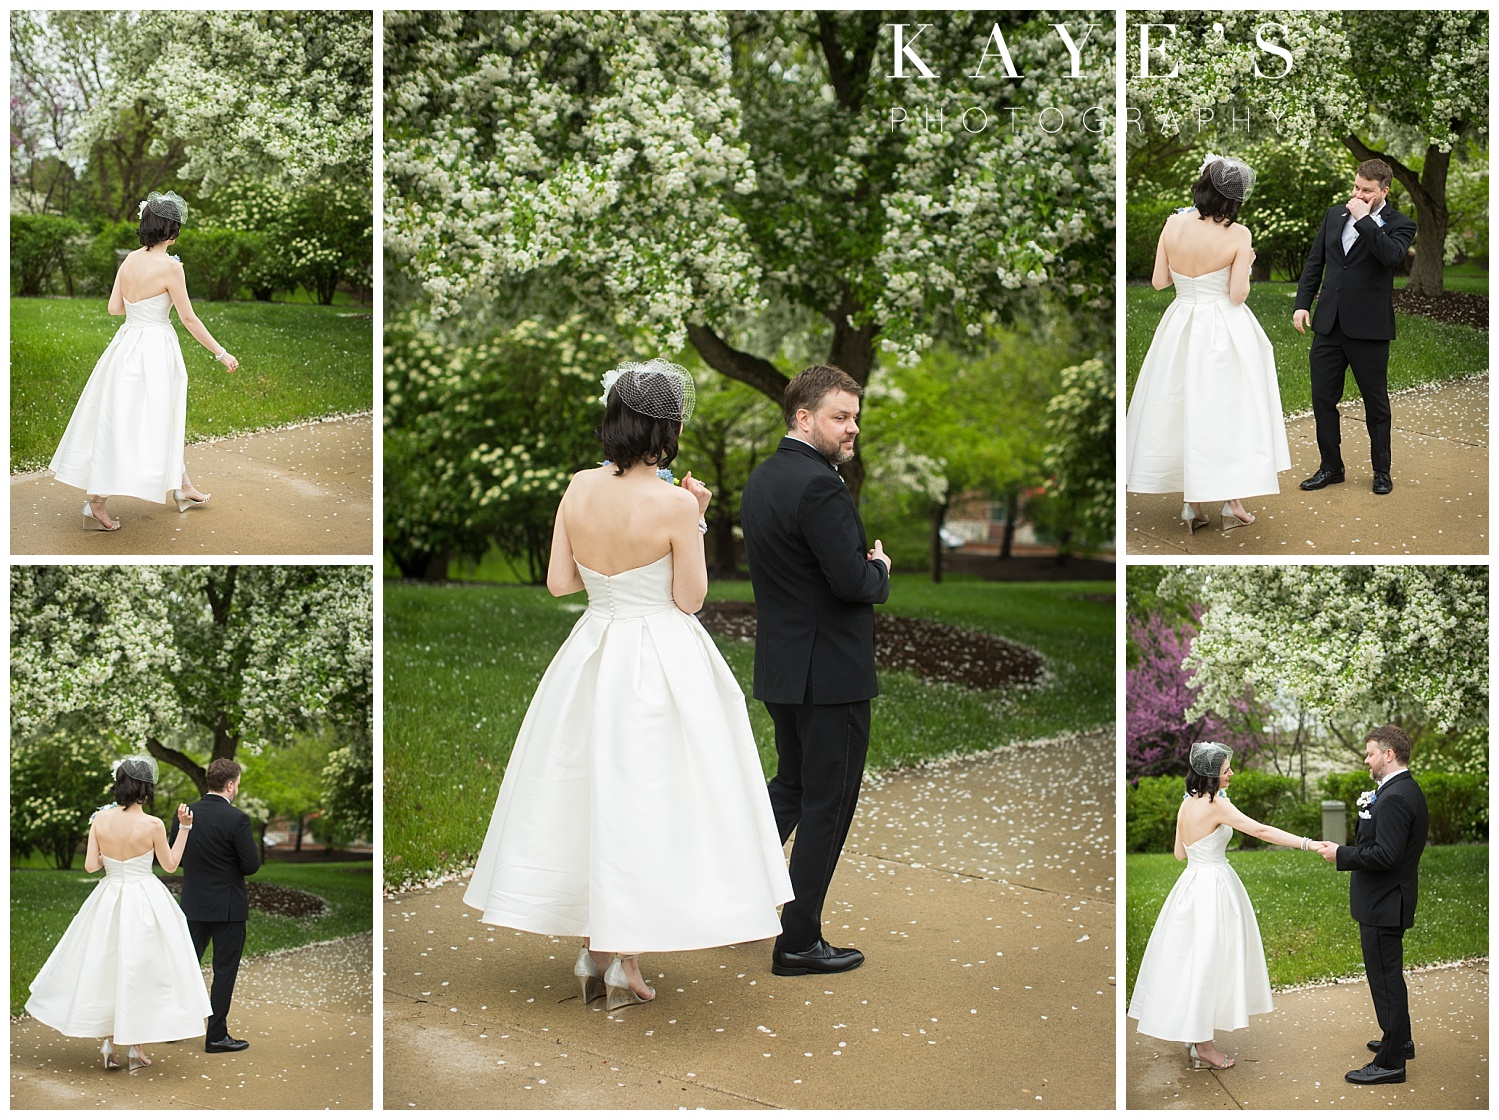 first look in front of flowering trees in flint, michigan before wedding ceremony